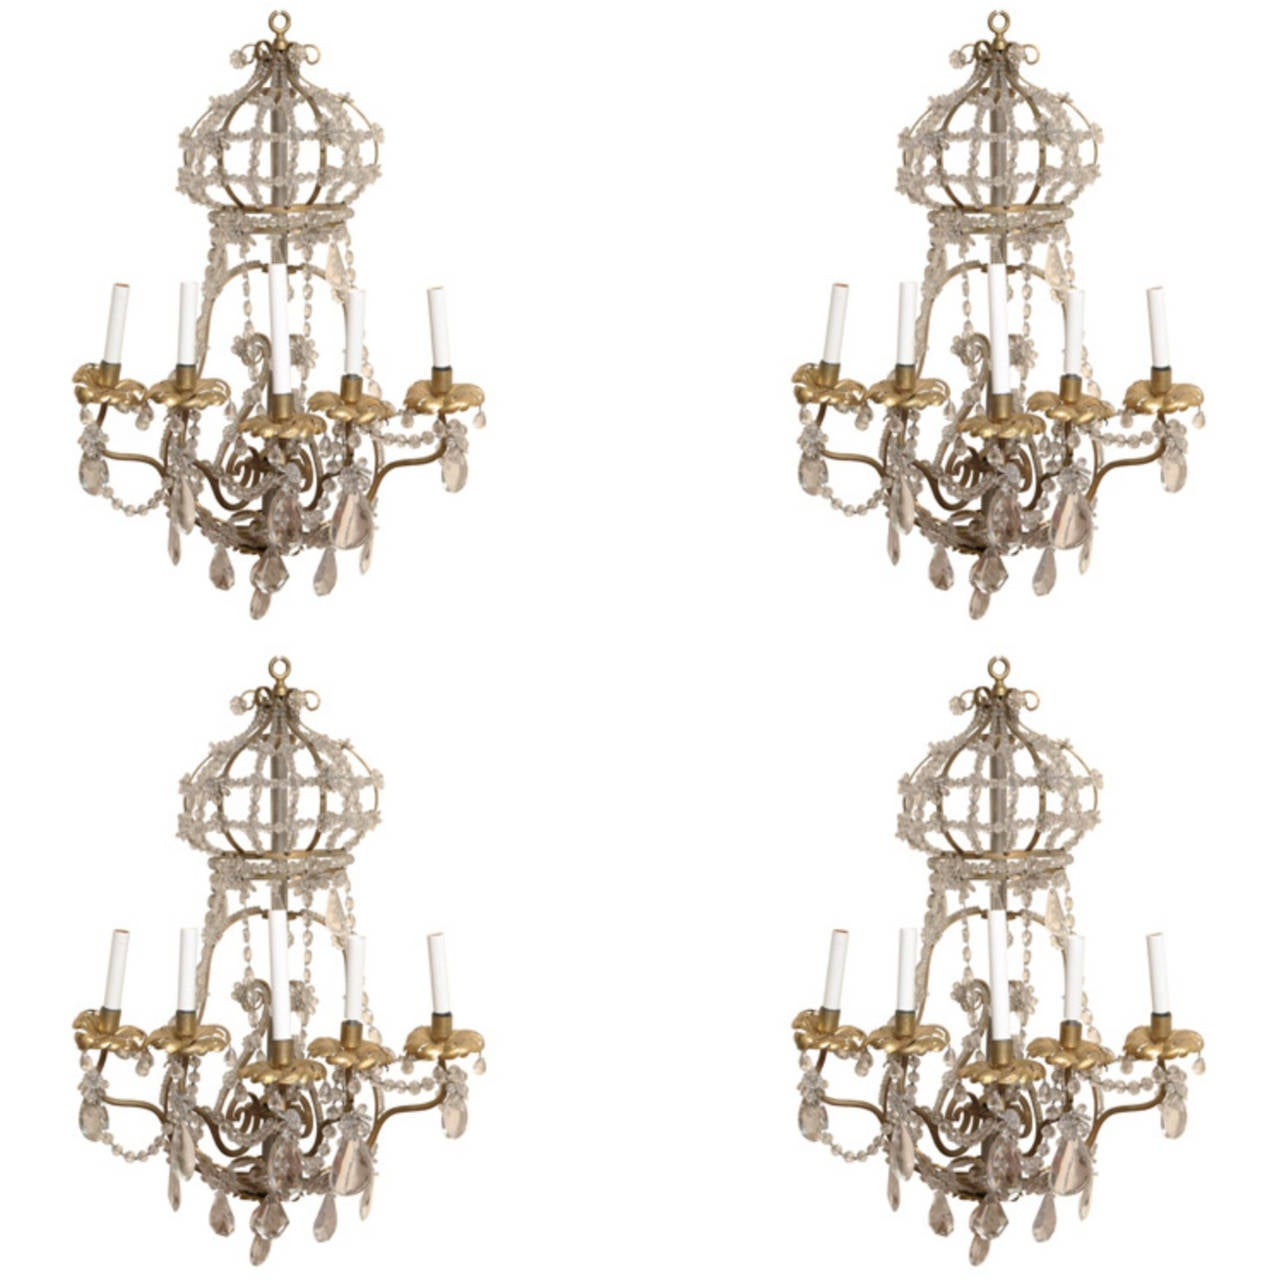 Large Crystal Wall Sconces : Set of Four Large Gilt Metal and Crystal Wall Lights Sconces at 1stdibs